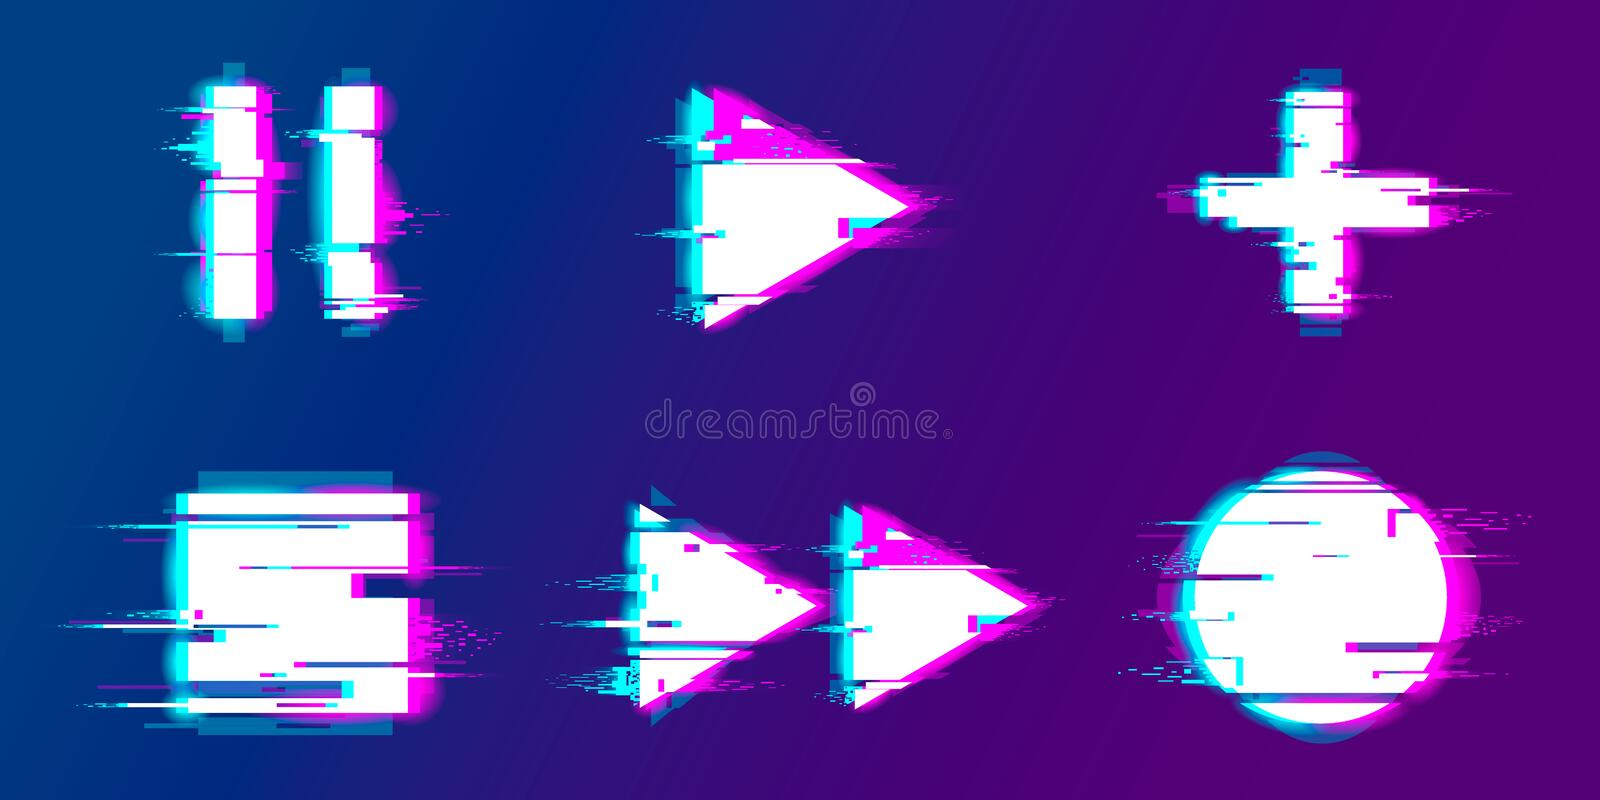 Glitch play, pause, record, play buttons vector illustration